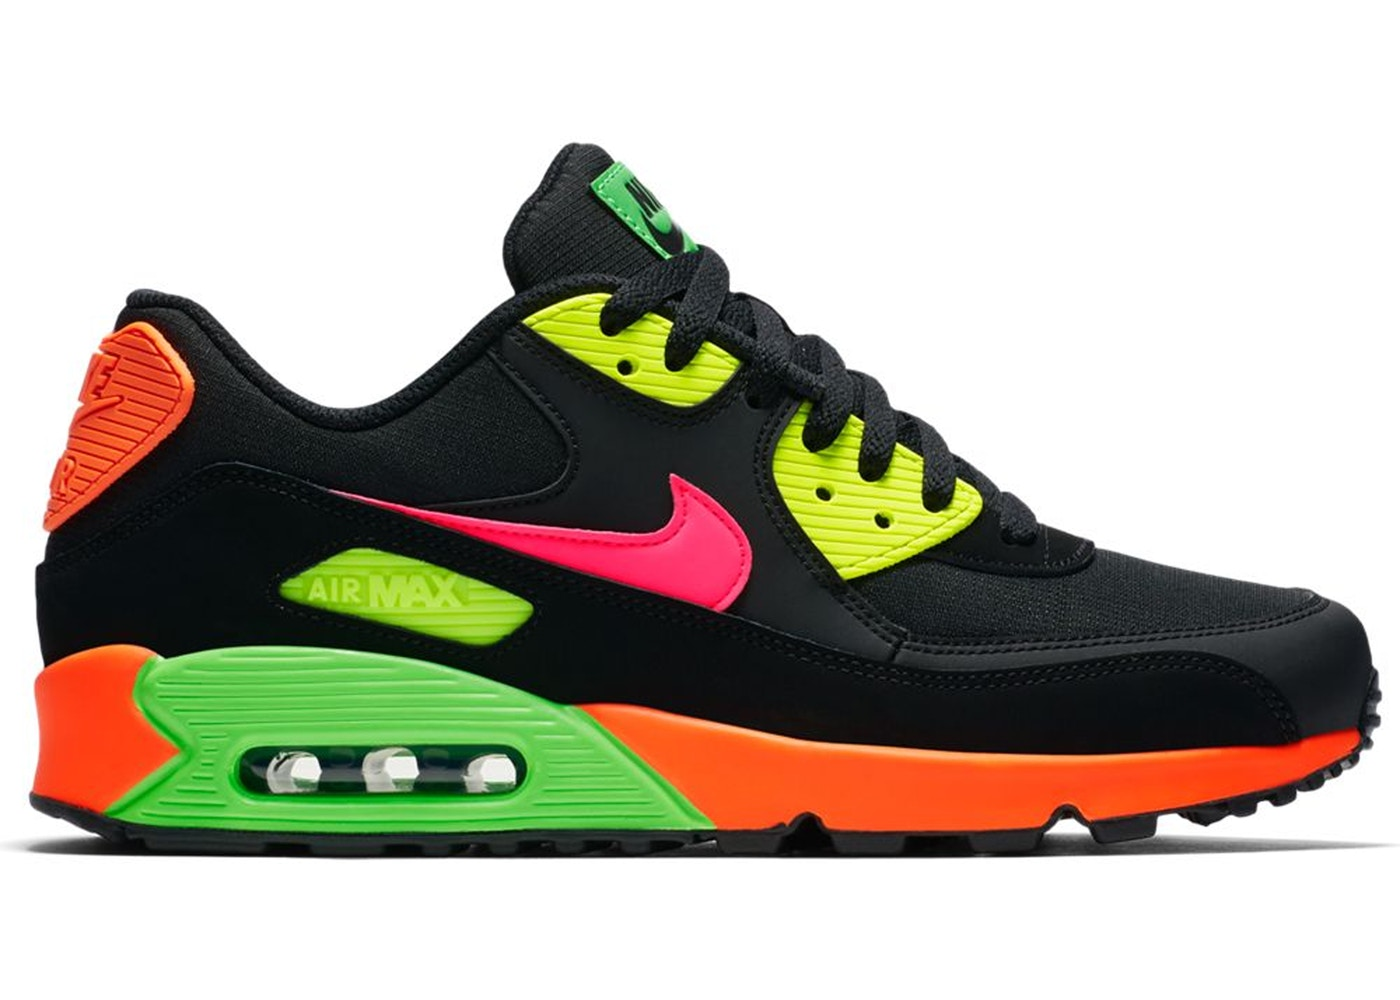 560796b9bb Sell. or Ask. Size: 12. View All Bids. Air Max 90 Tokyo Neon